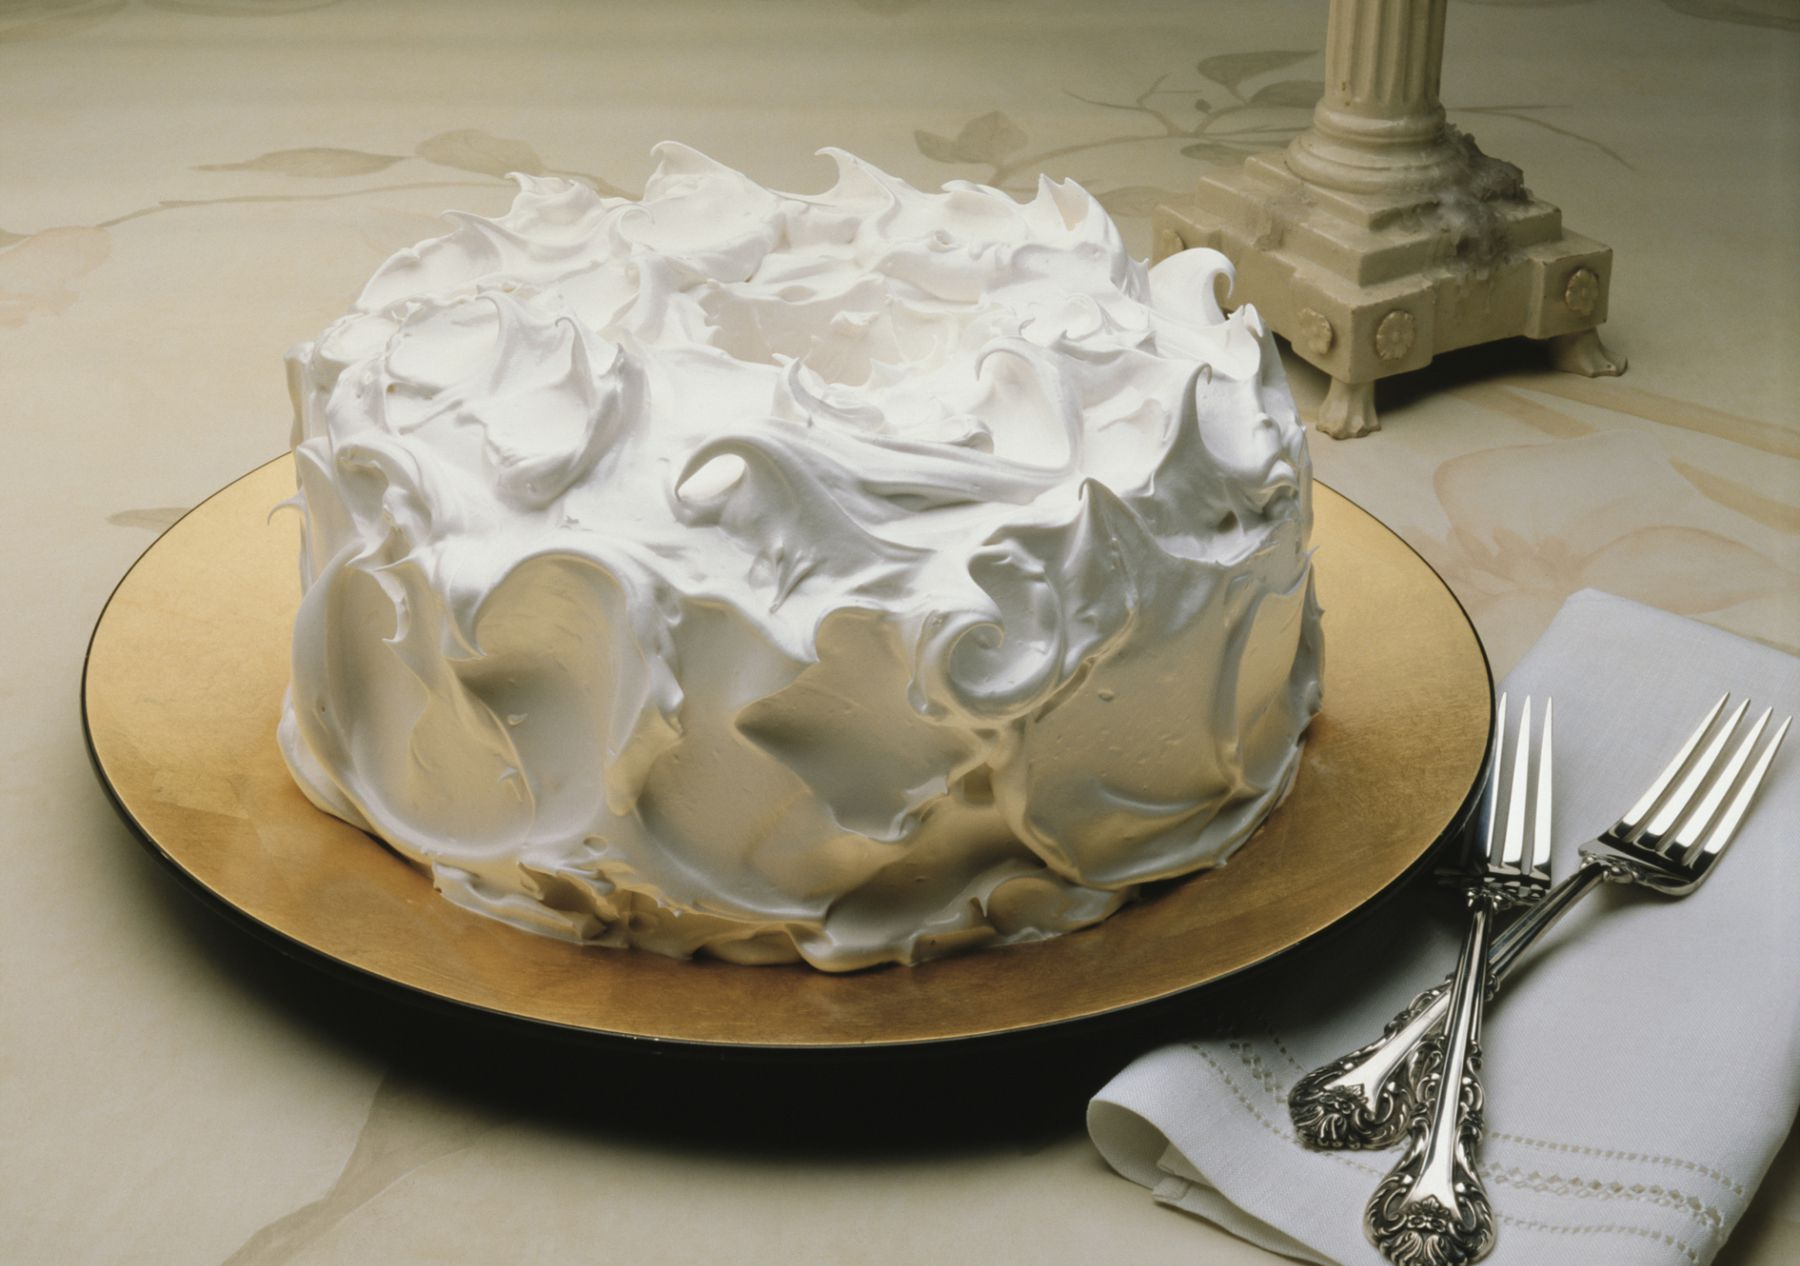 7Minute Fluffy White Frosting Recipe